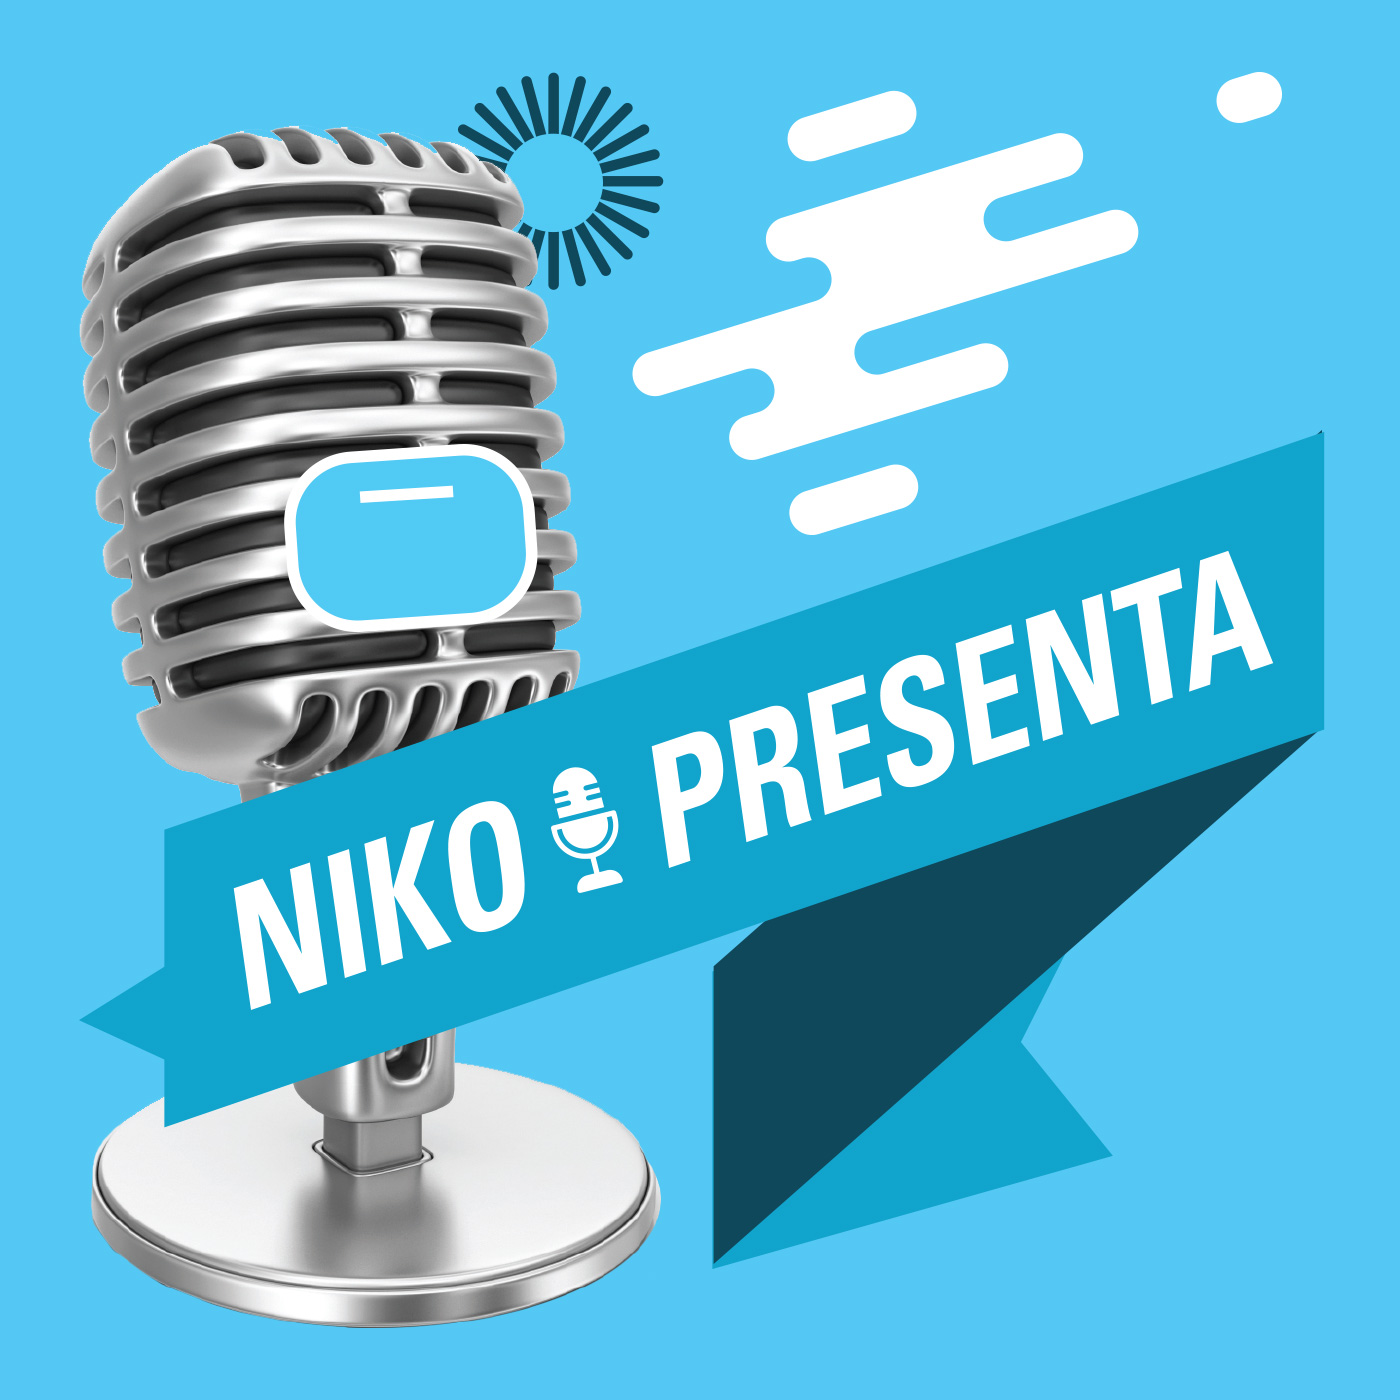 Niko Presenta - Appleboy Productions